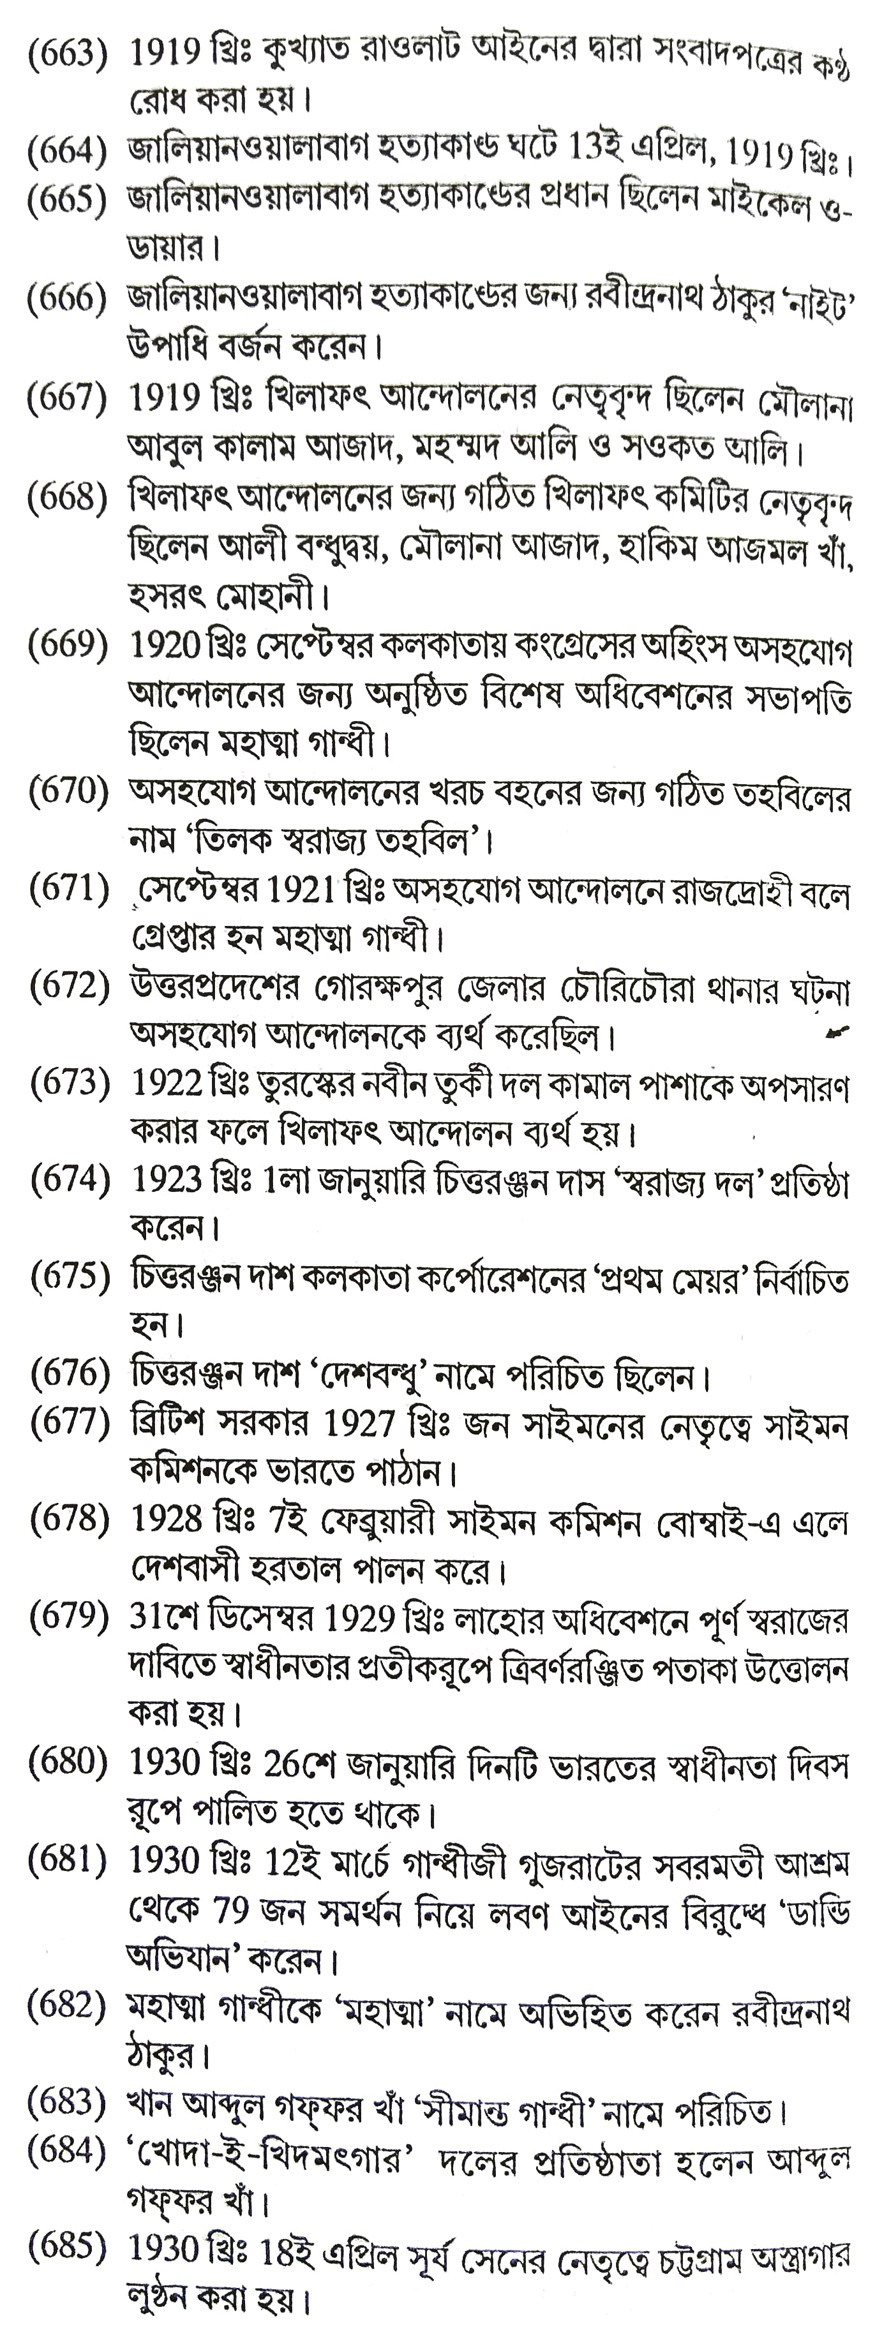 History of India-770+ One-liner Question Answer - WBCS Notebook